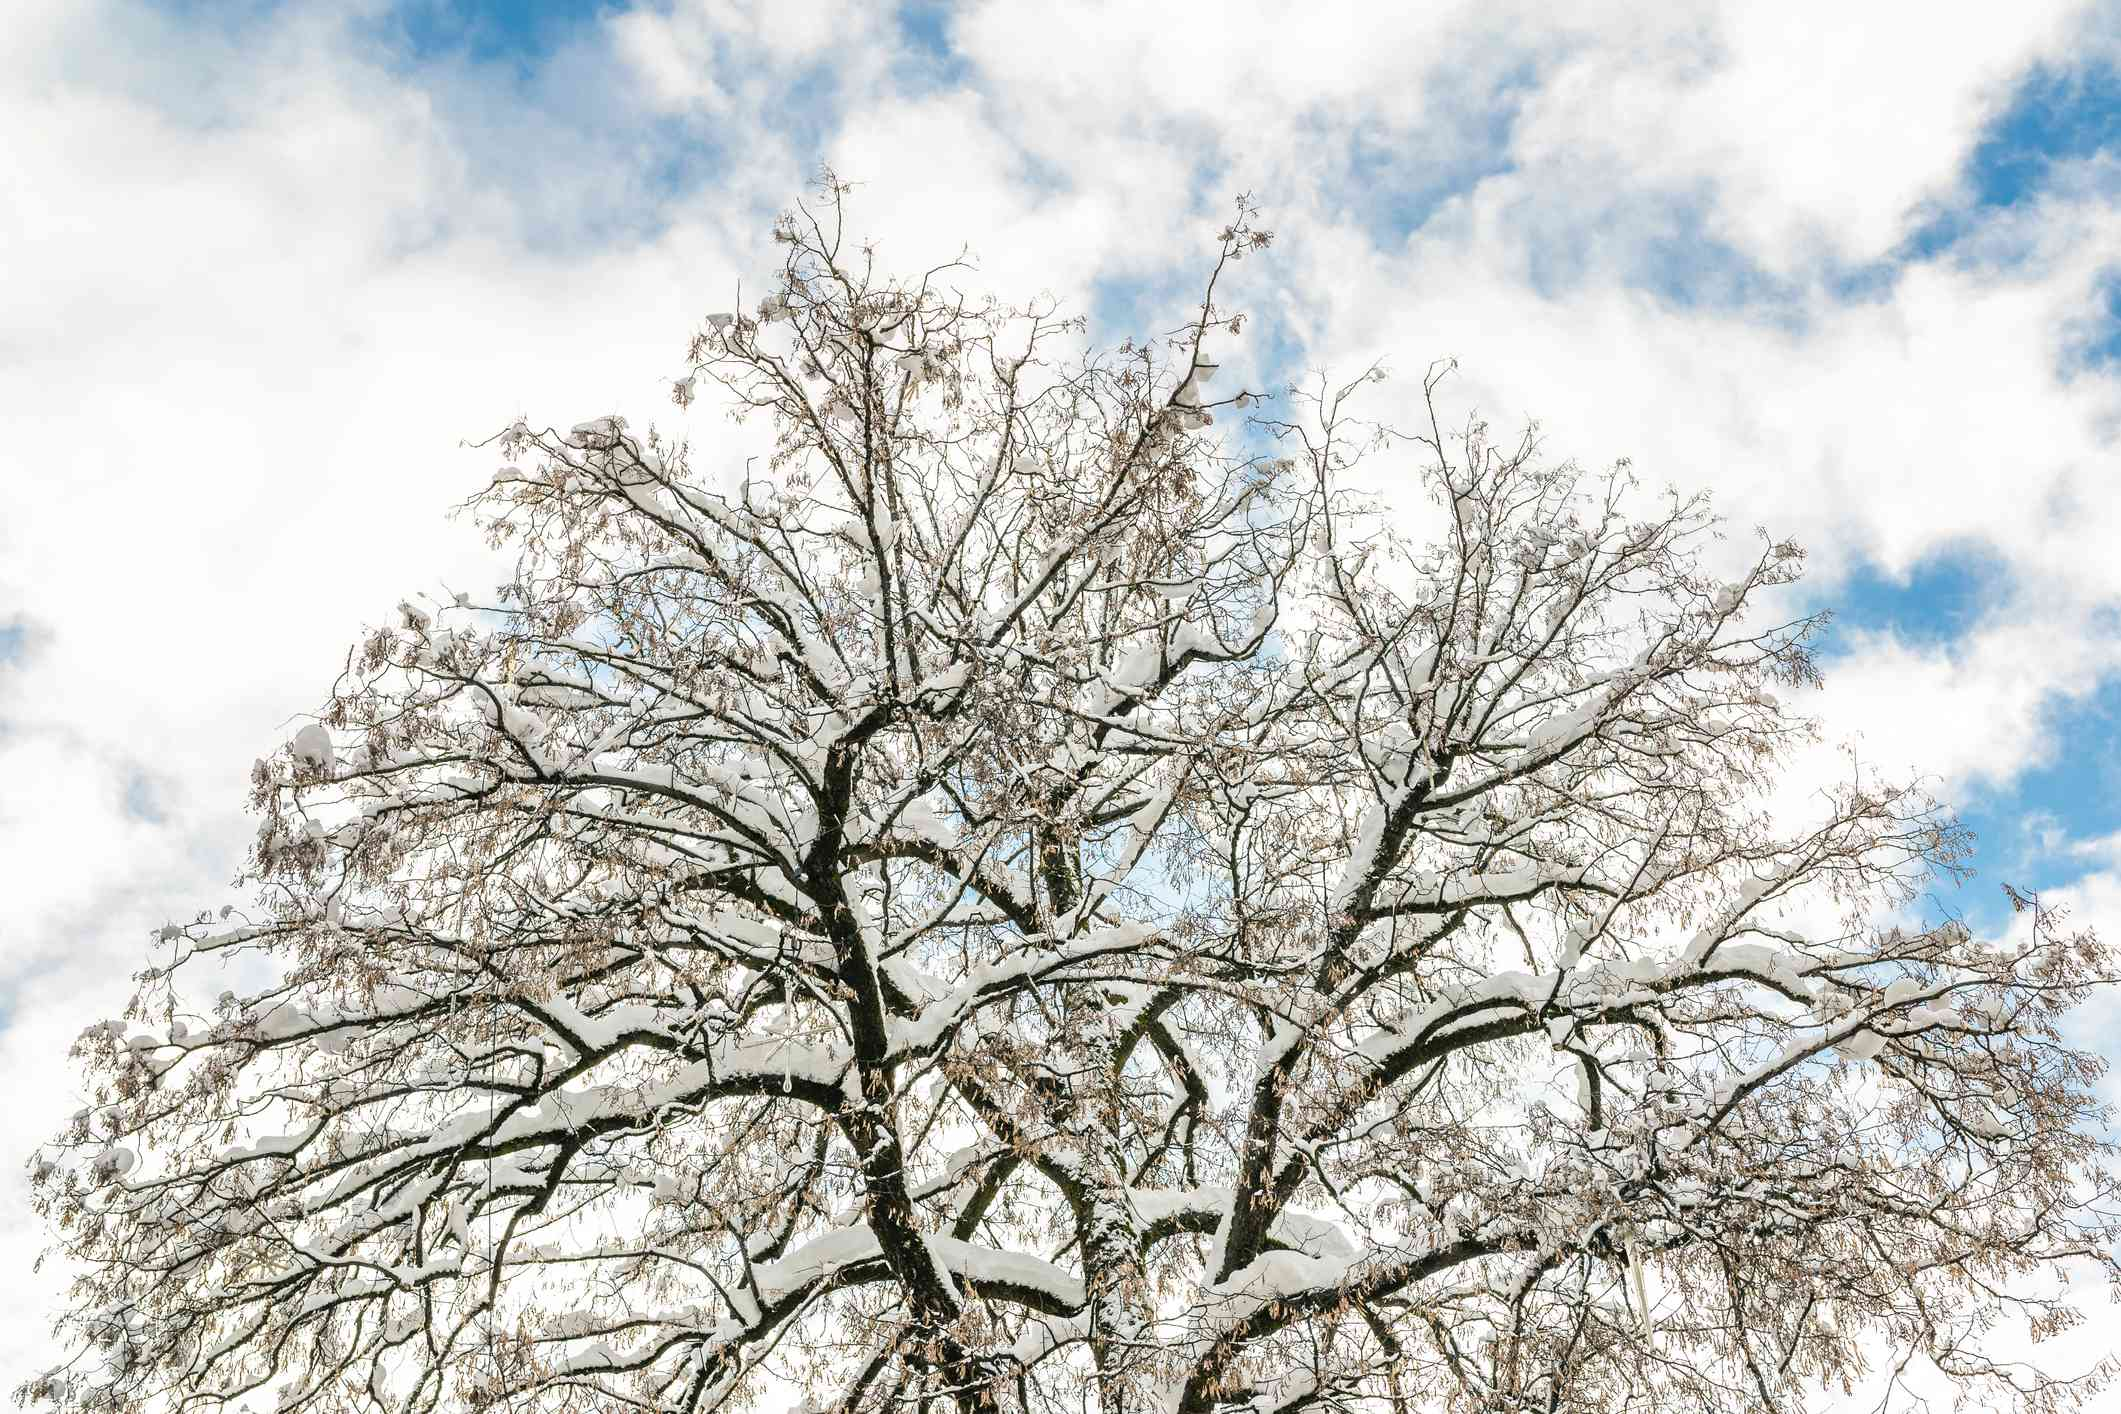 Crown of a tree covered in snow against a cloudy blue sky.